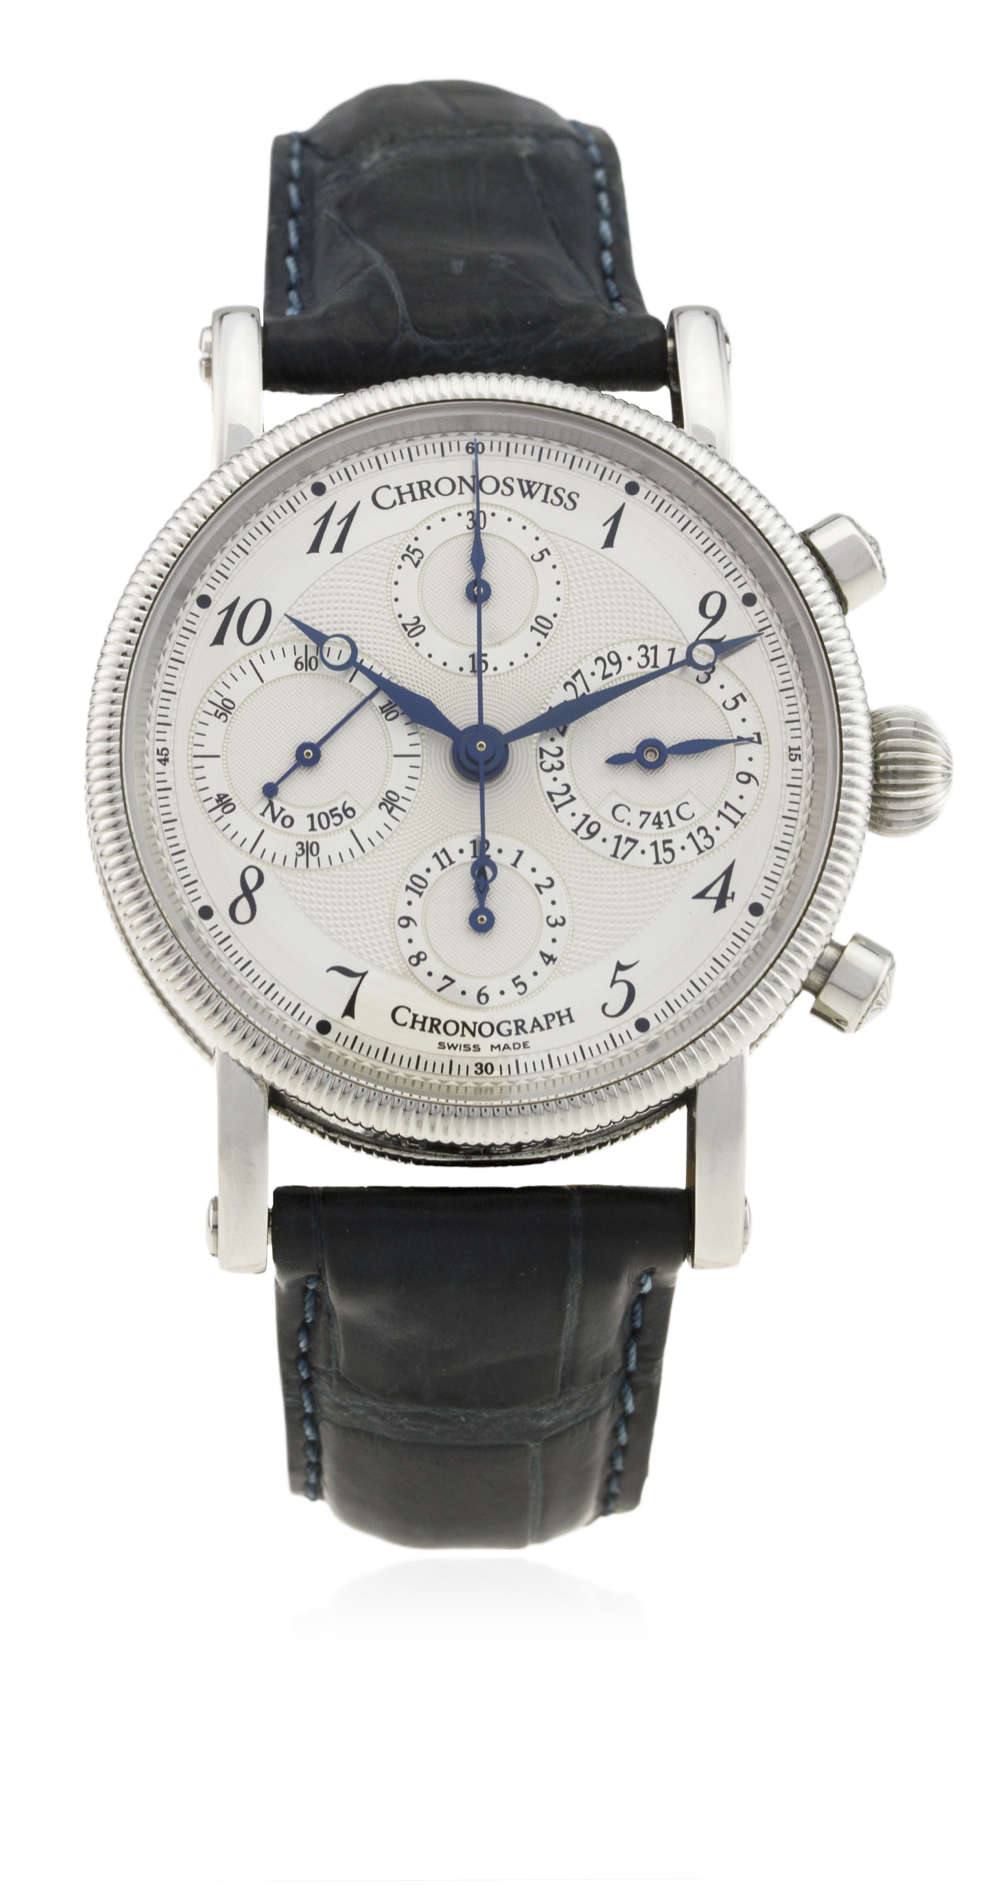 Lot 116 - A GENTLEMAN'S STAINLESS STEEL CHRONOSWISS CHRONOGRAPH WRIST WATCH CIRCA 2008, CH 7523 D: Two tone